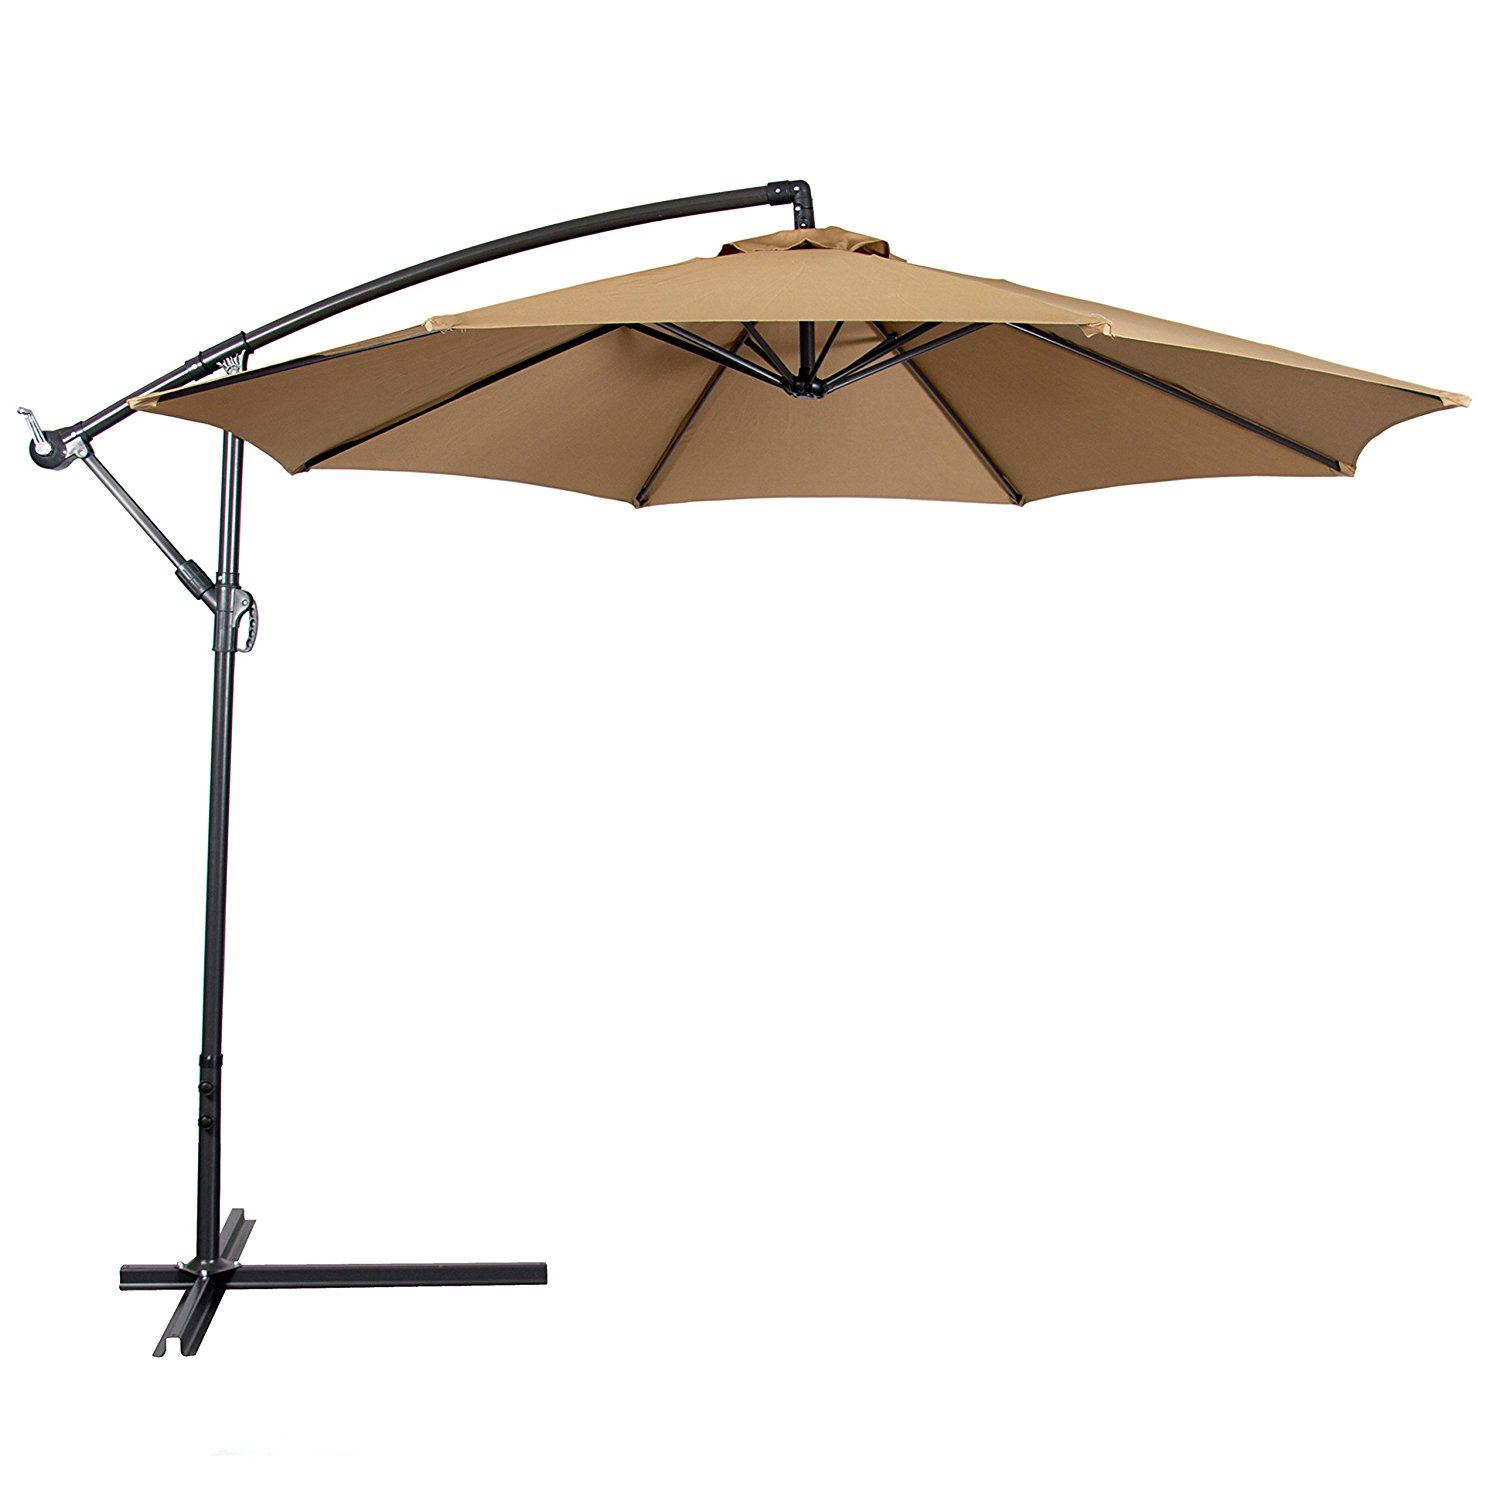 patio umbrellas amazon.com : best choice products offset 10u0027 hanging outdoor market new tan patio  umbrella, beige : JZNIMOD